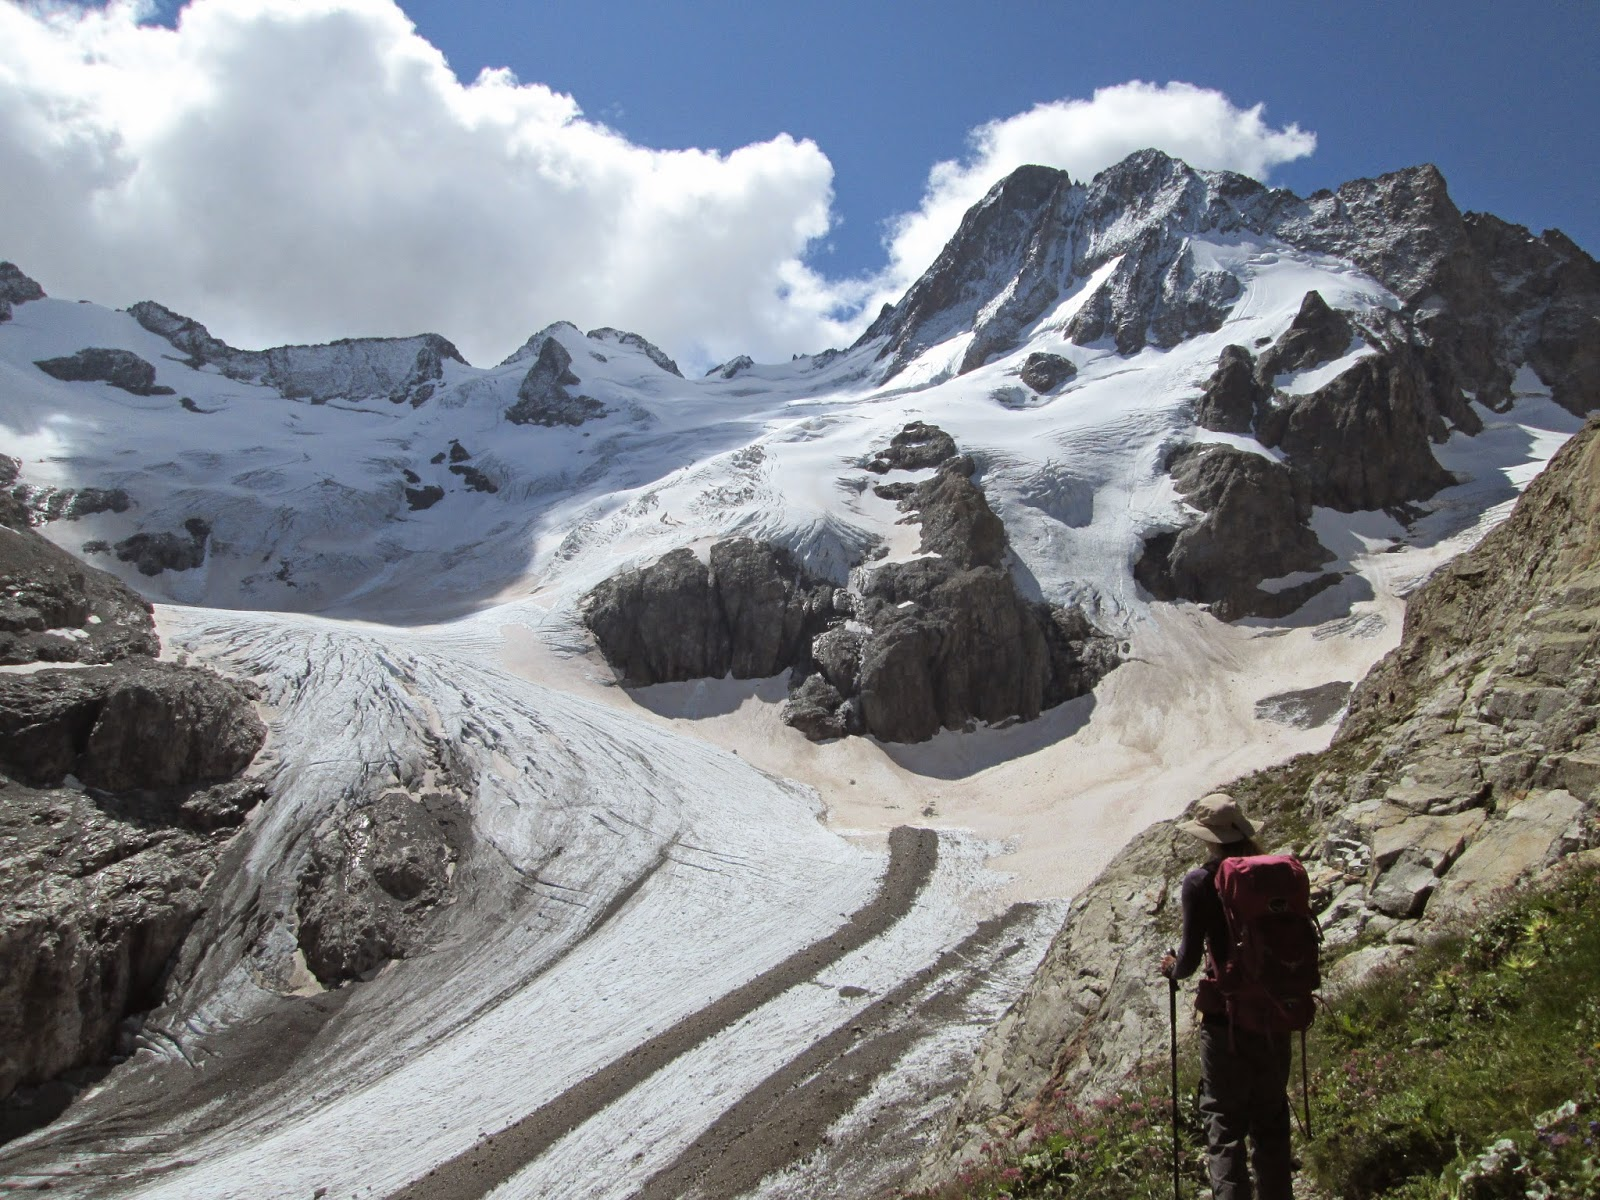 Glacier de la Pilatte, Ecrins National Park, Alps France